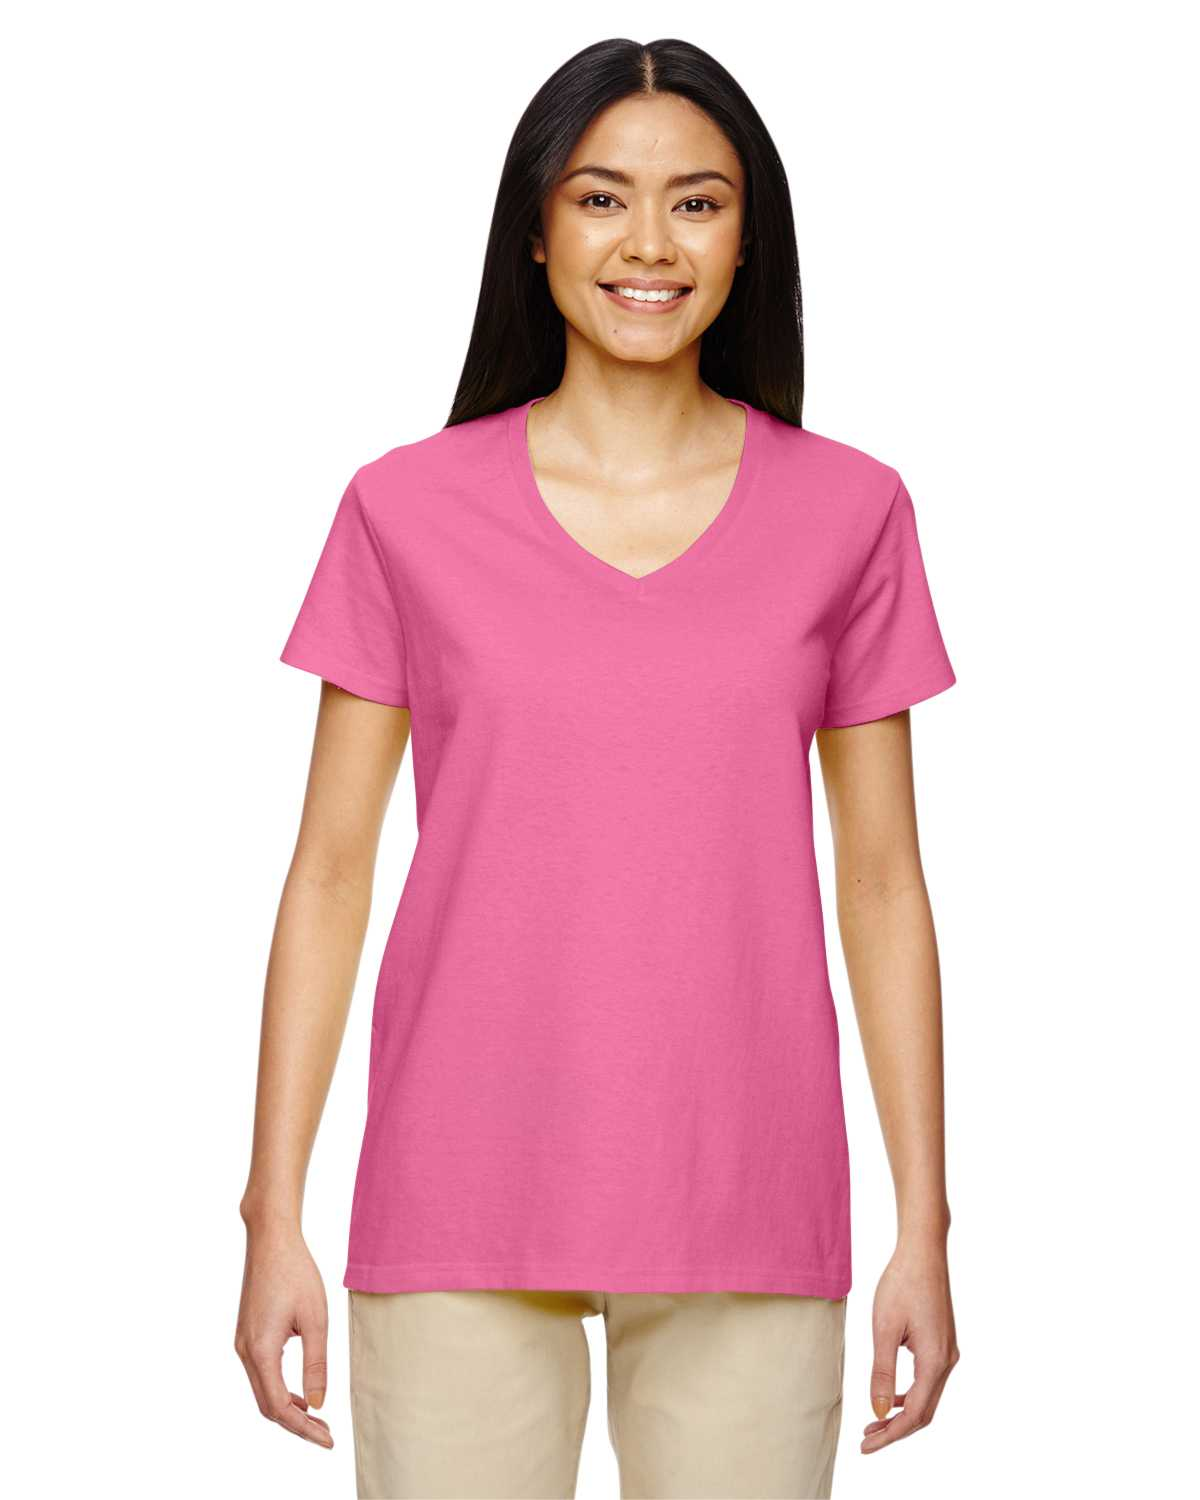 Gildan g500vl ladies 39 heavy cotton 5 3 oz v neck t shirt for Thick v neck t shirts